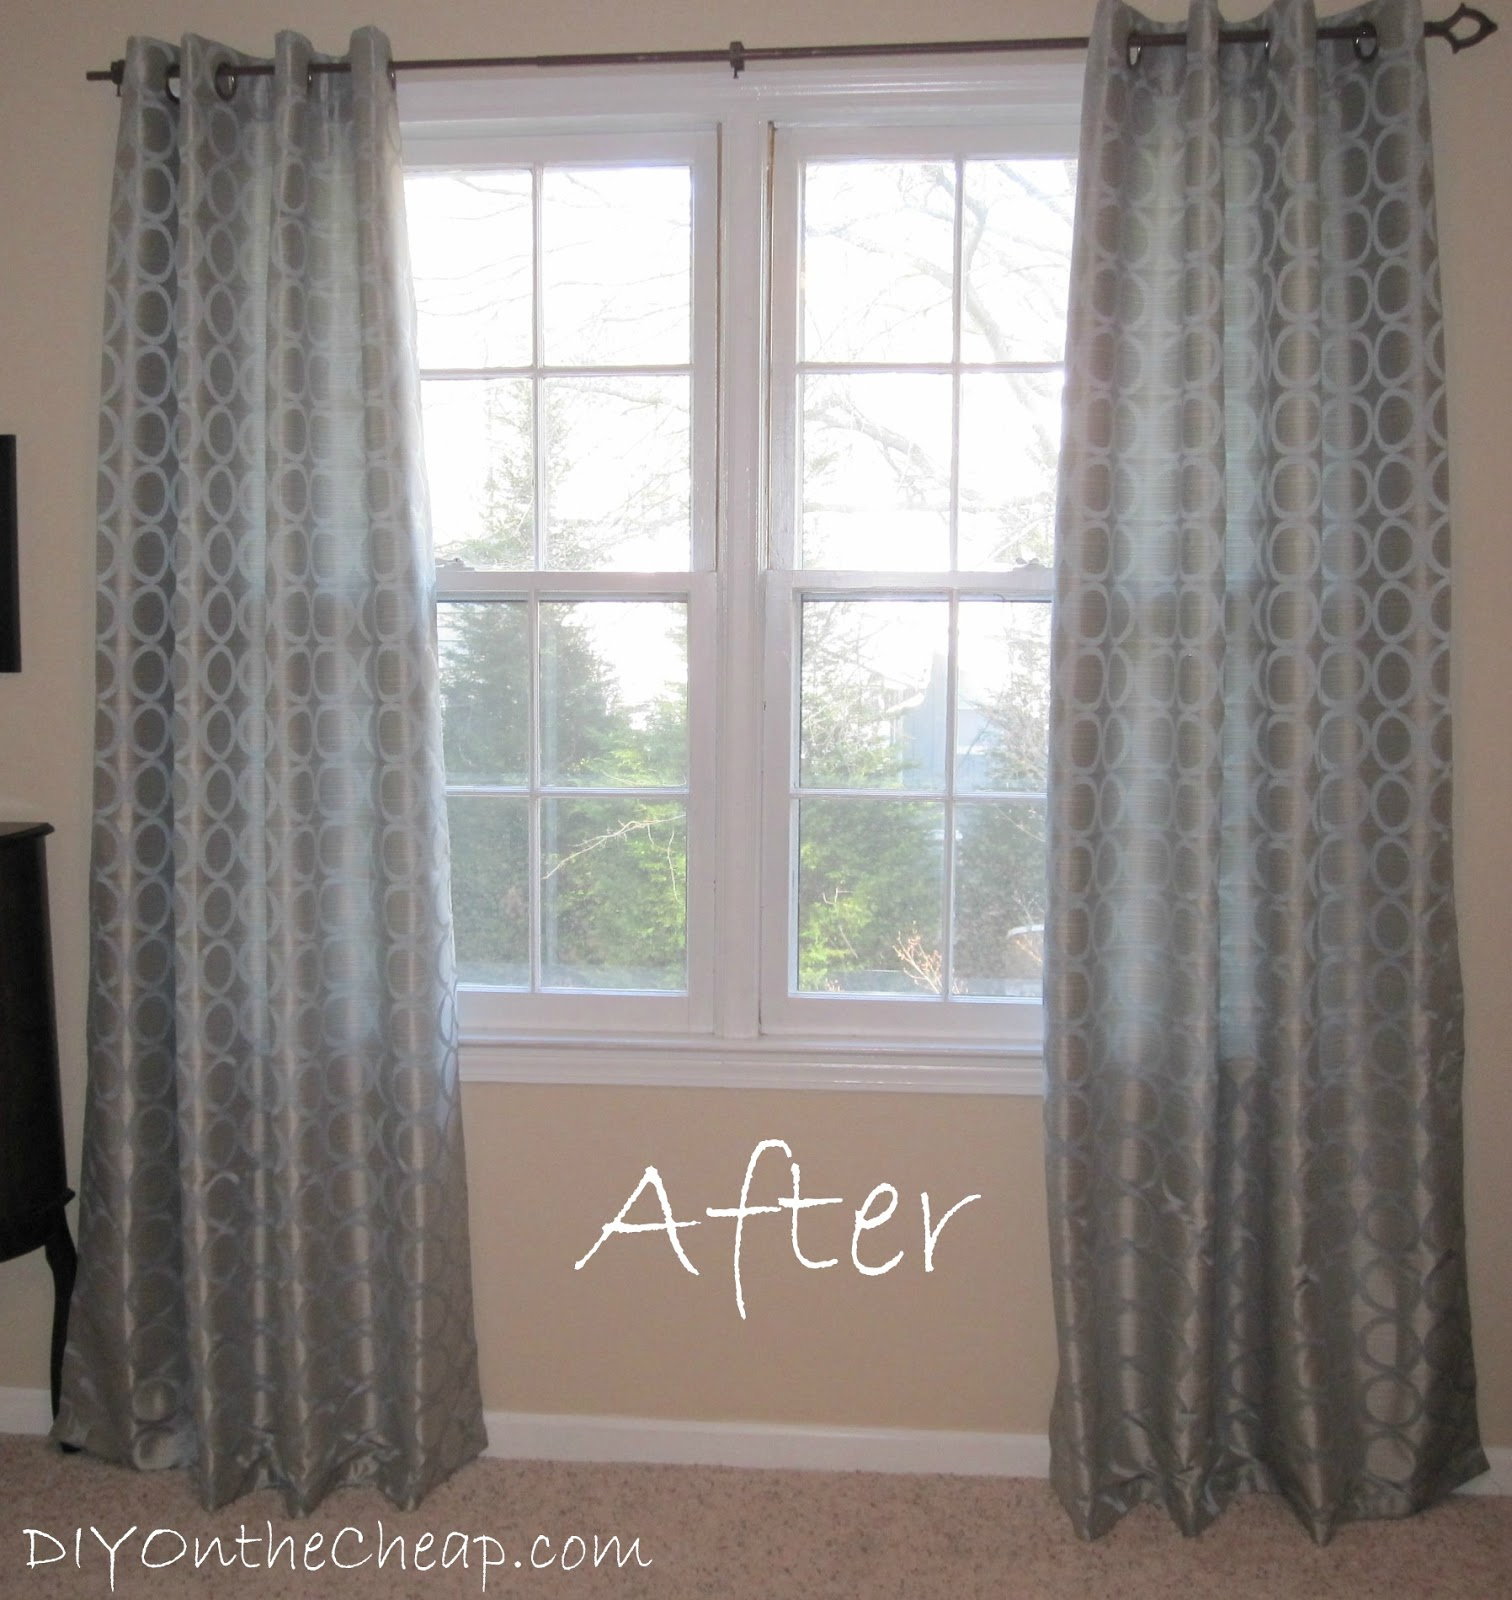 we plan on re doing our bedroom this spring diy style and on the cheap of course we will be painting all of the furniture and eventually this space - How To Hem Curtains